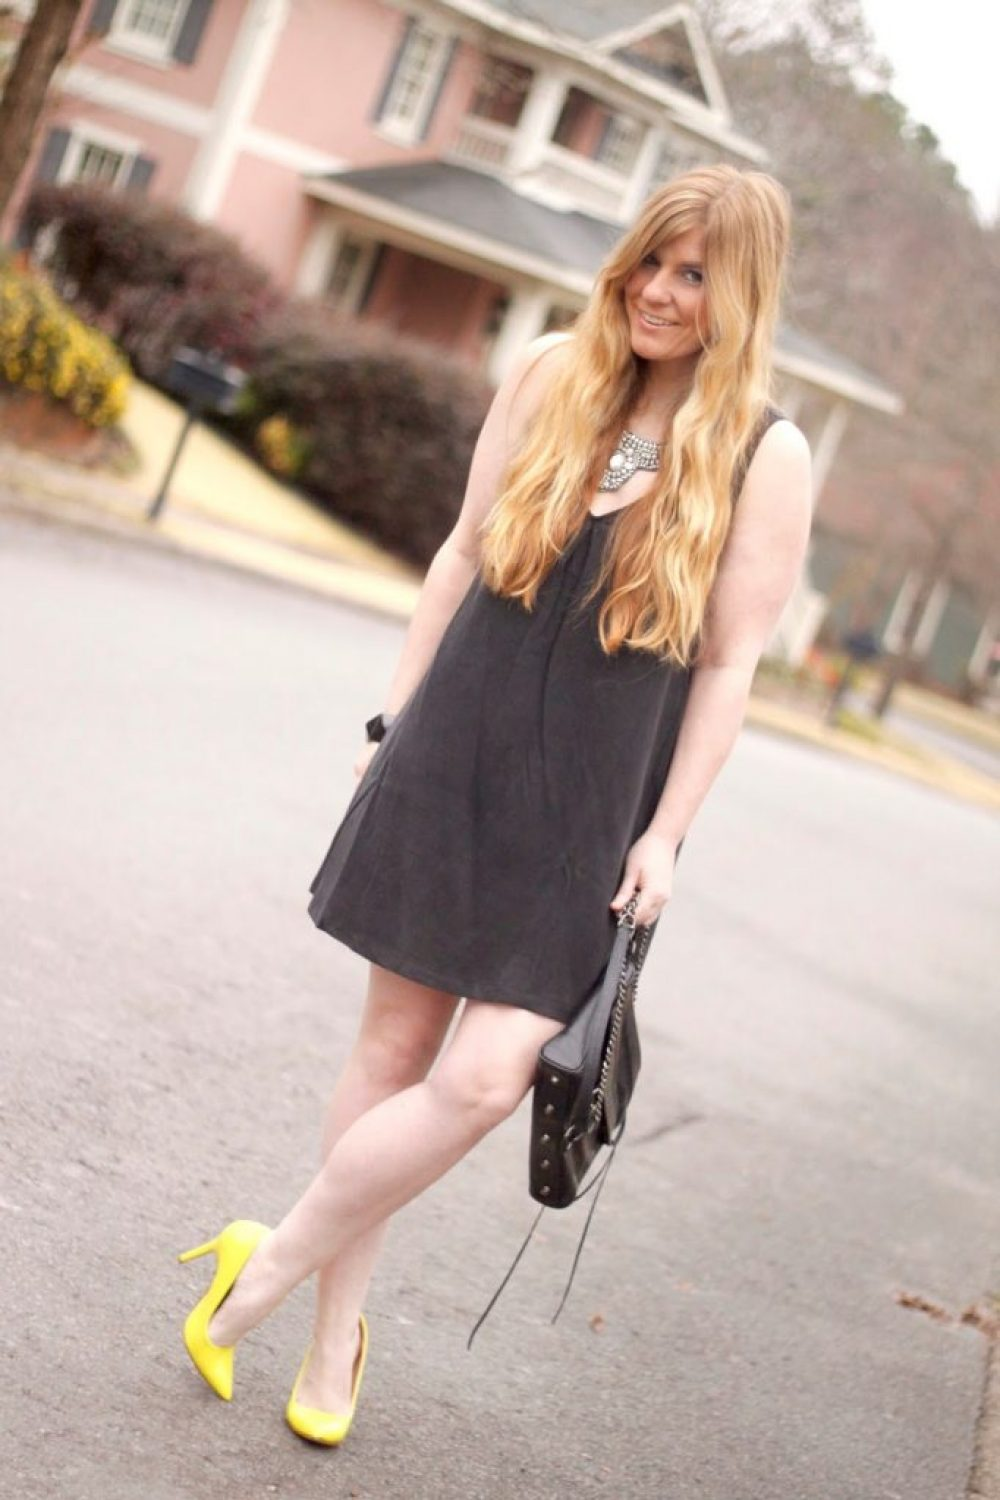 How I Wore My Heels: Go Bright for Spring!